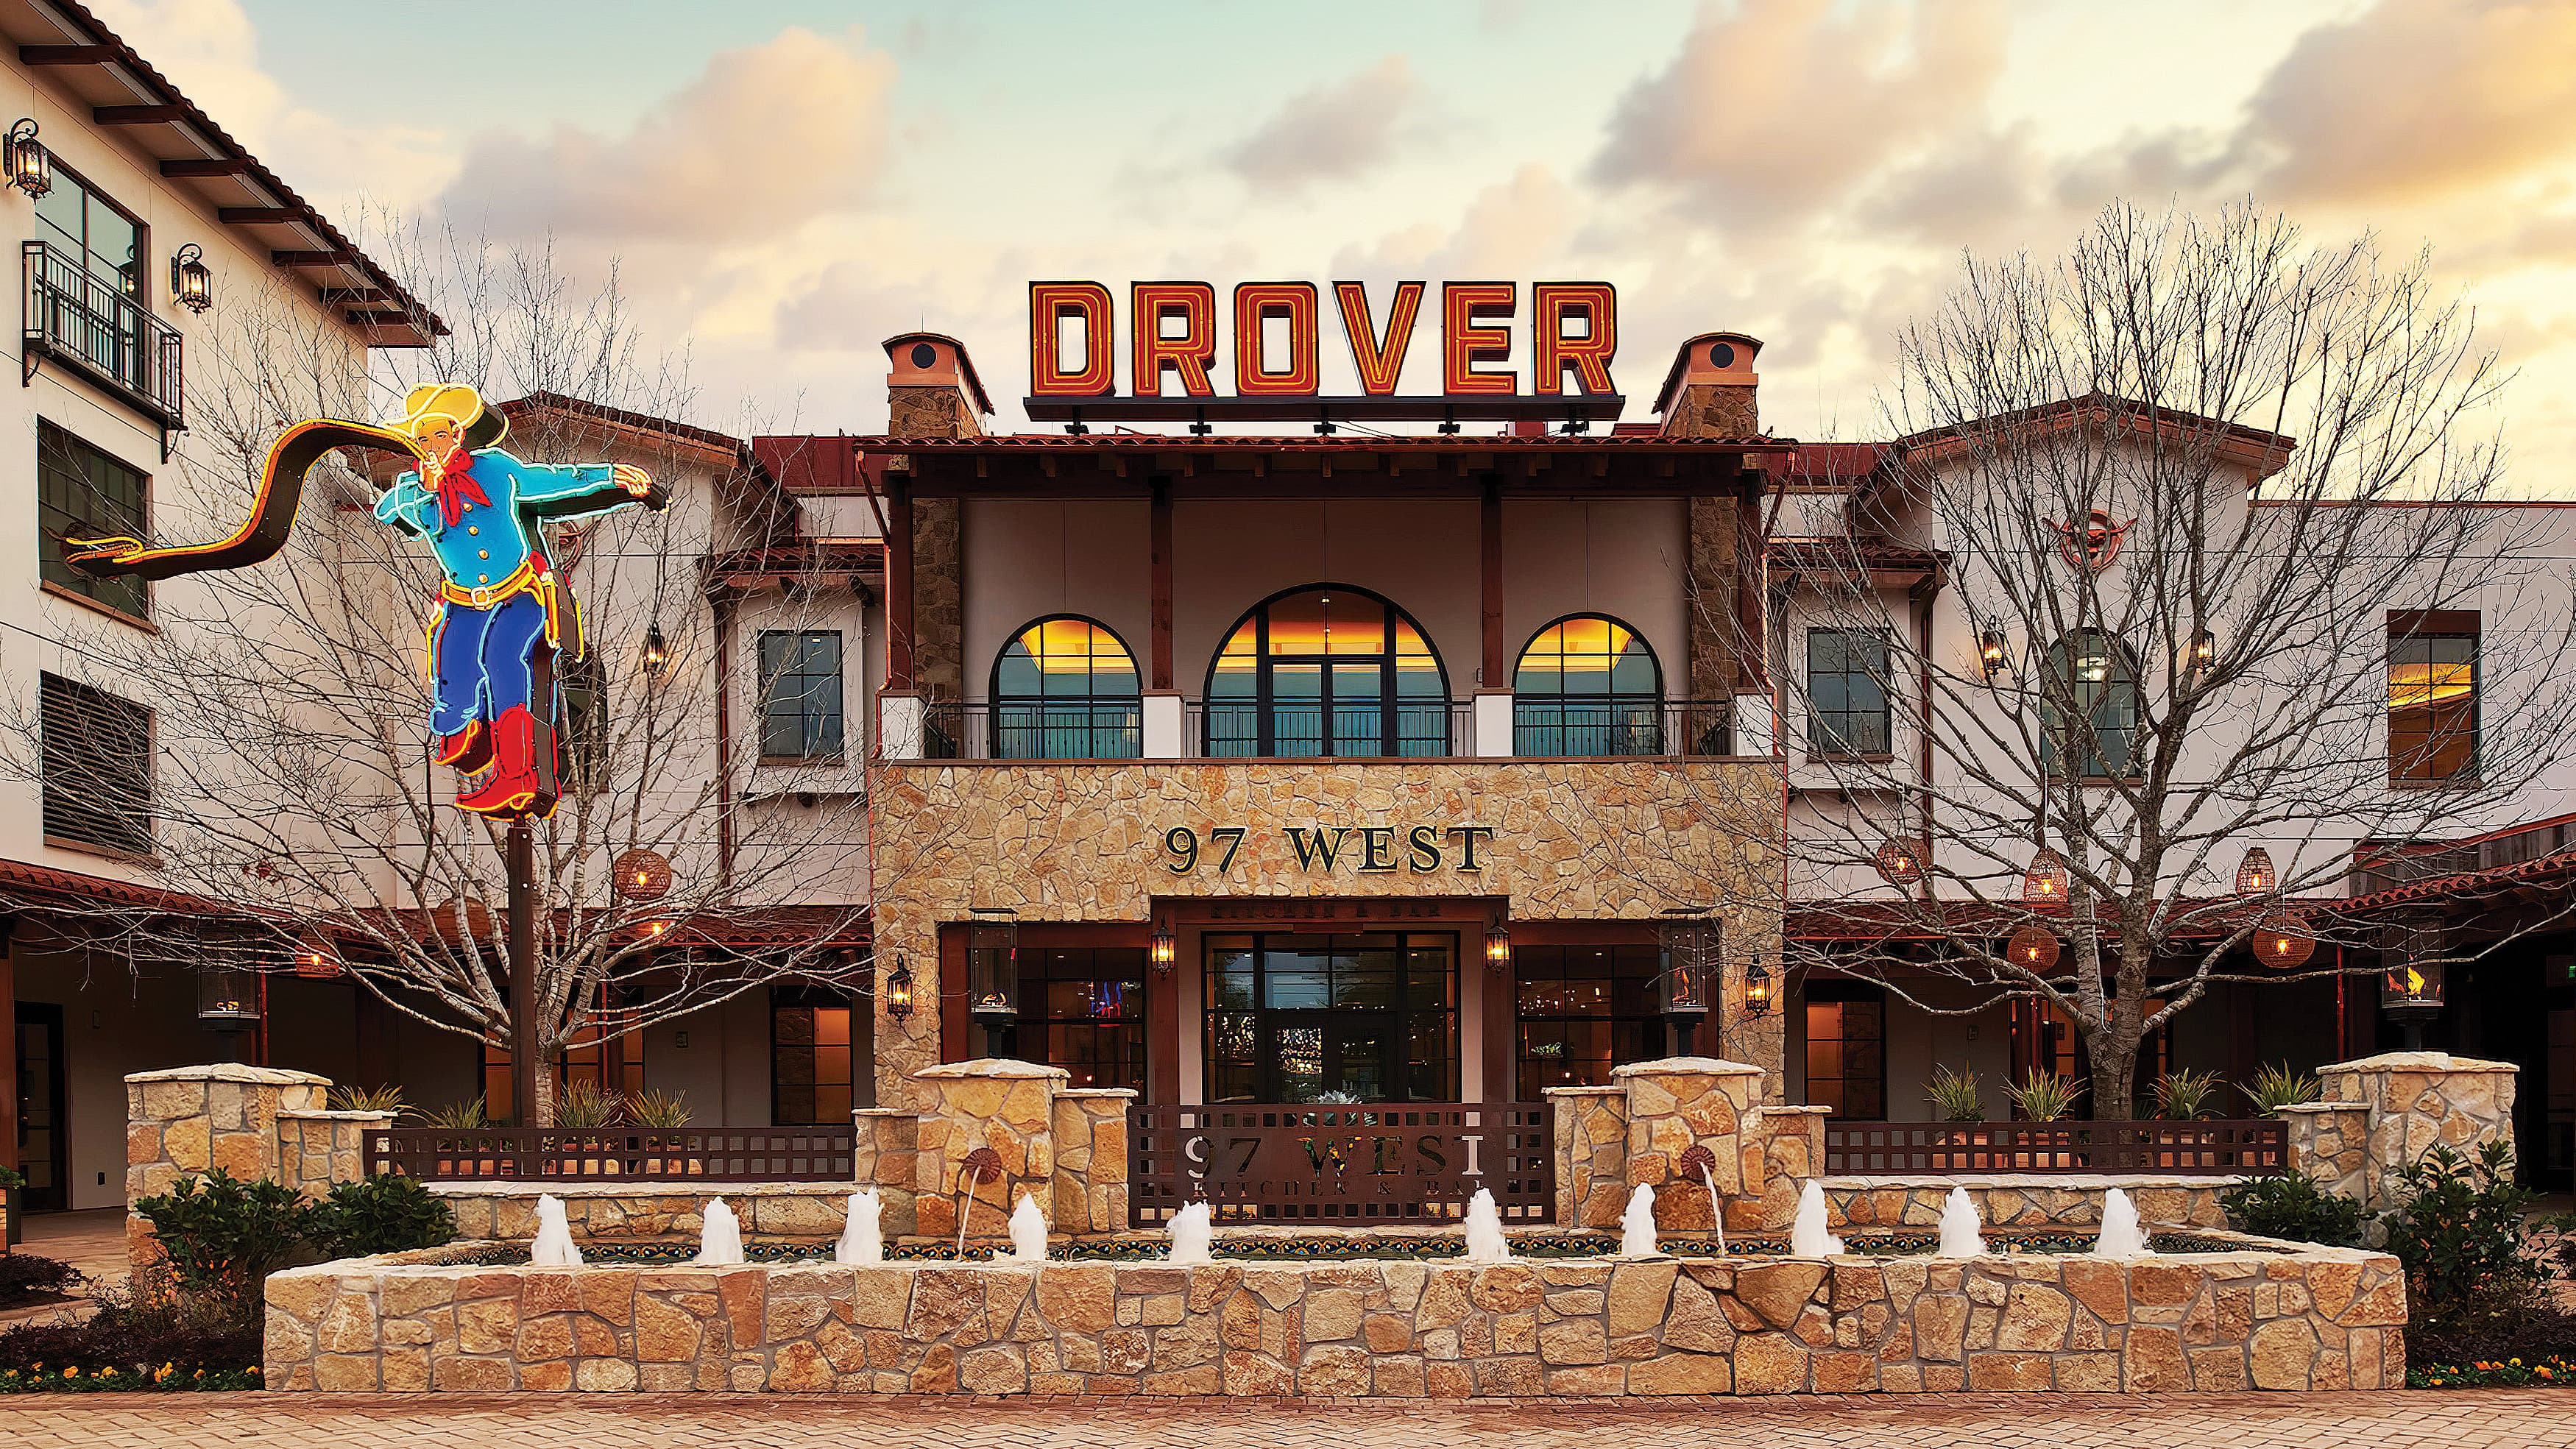 Exterior entrance of Hotel Drover in Fort Worth, Texas with rooftop neon signage design by RSM Design.